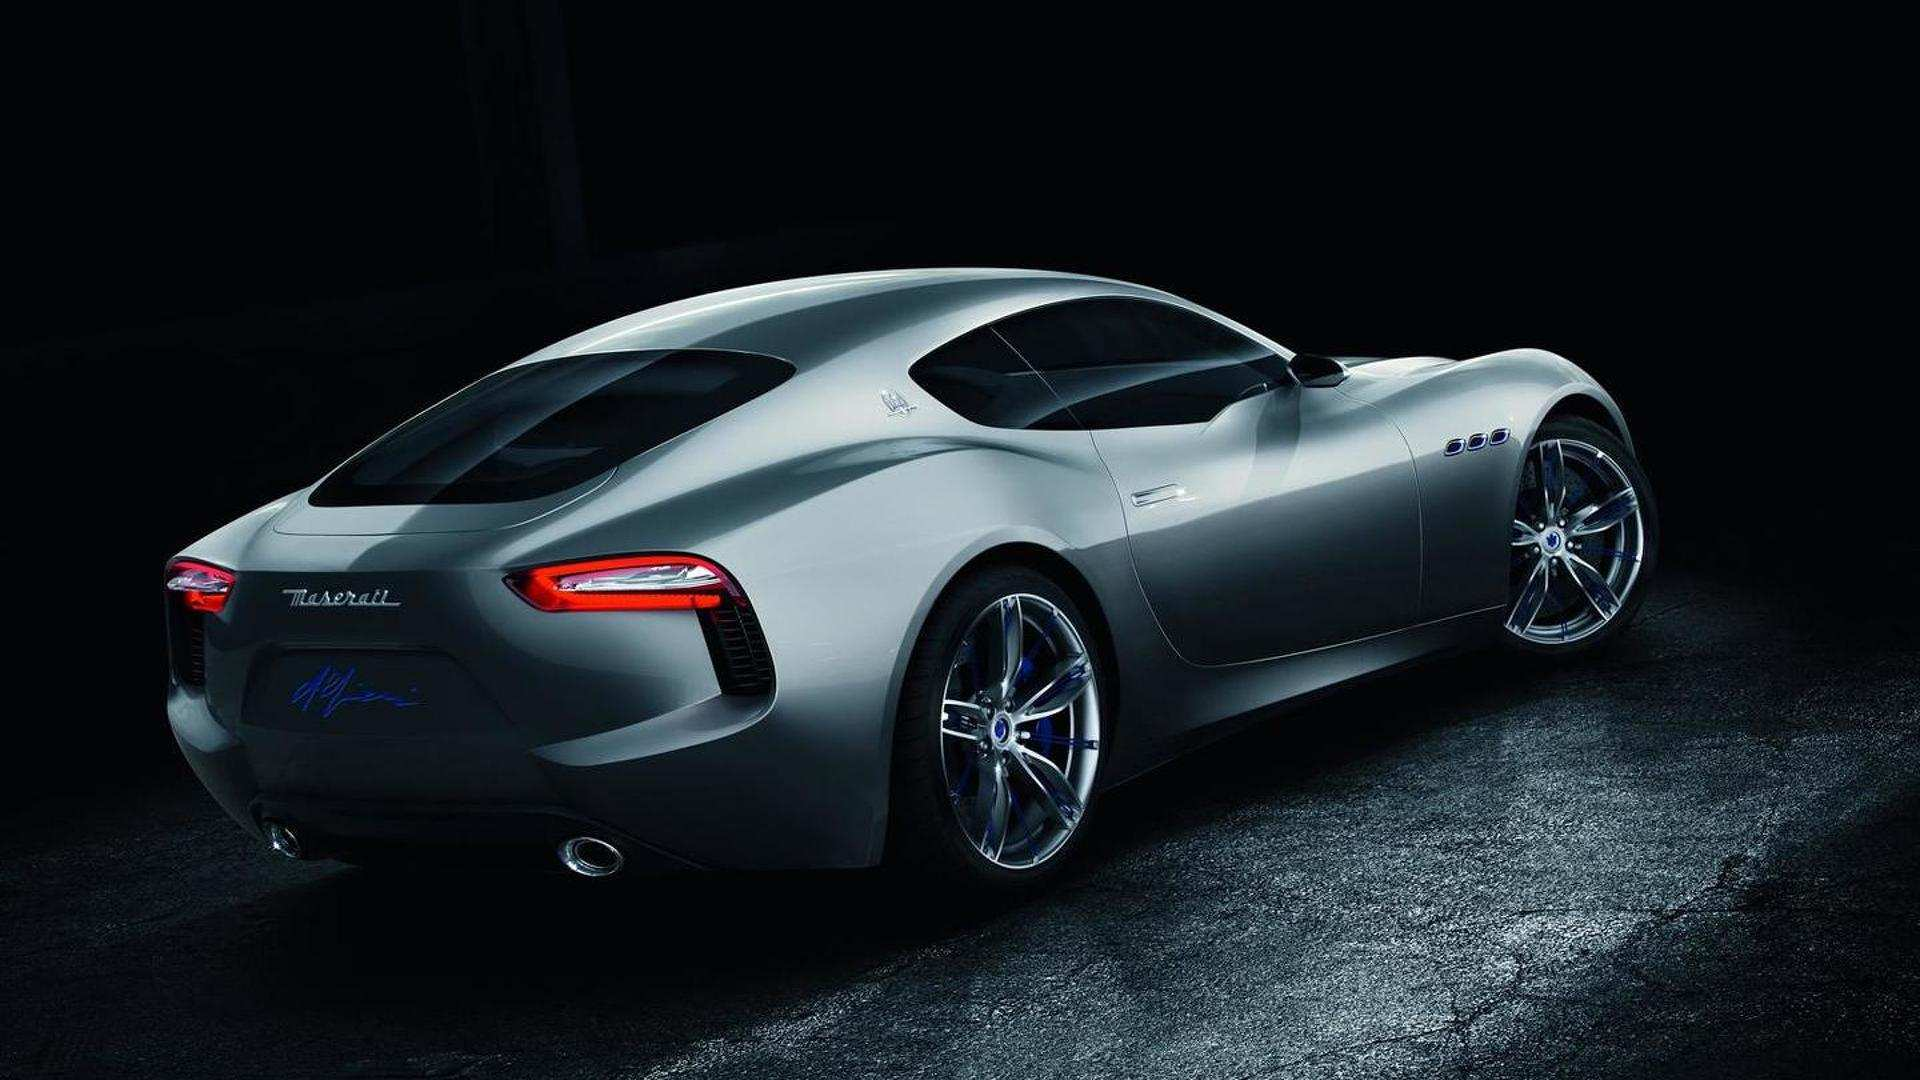 89 The Best 2020 Maserati Release Date And Concept